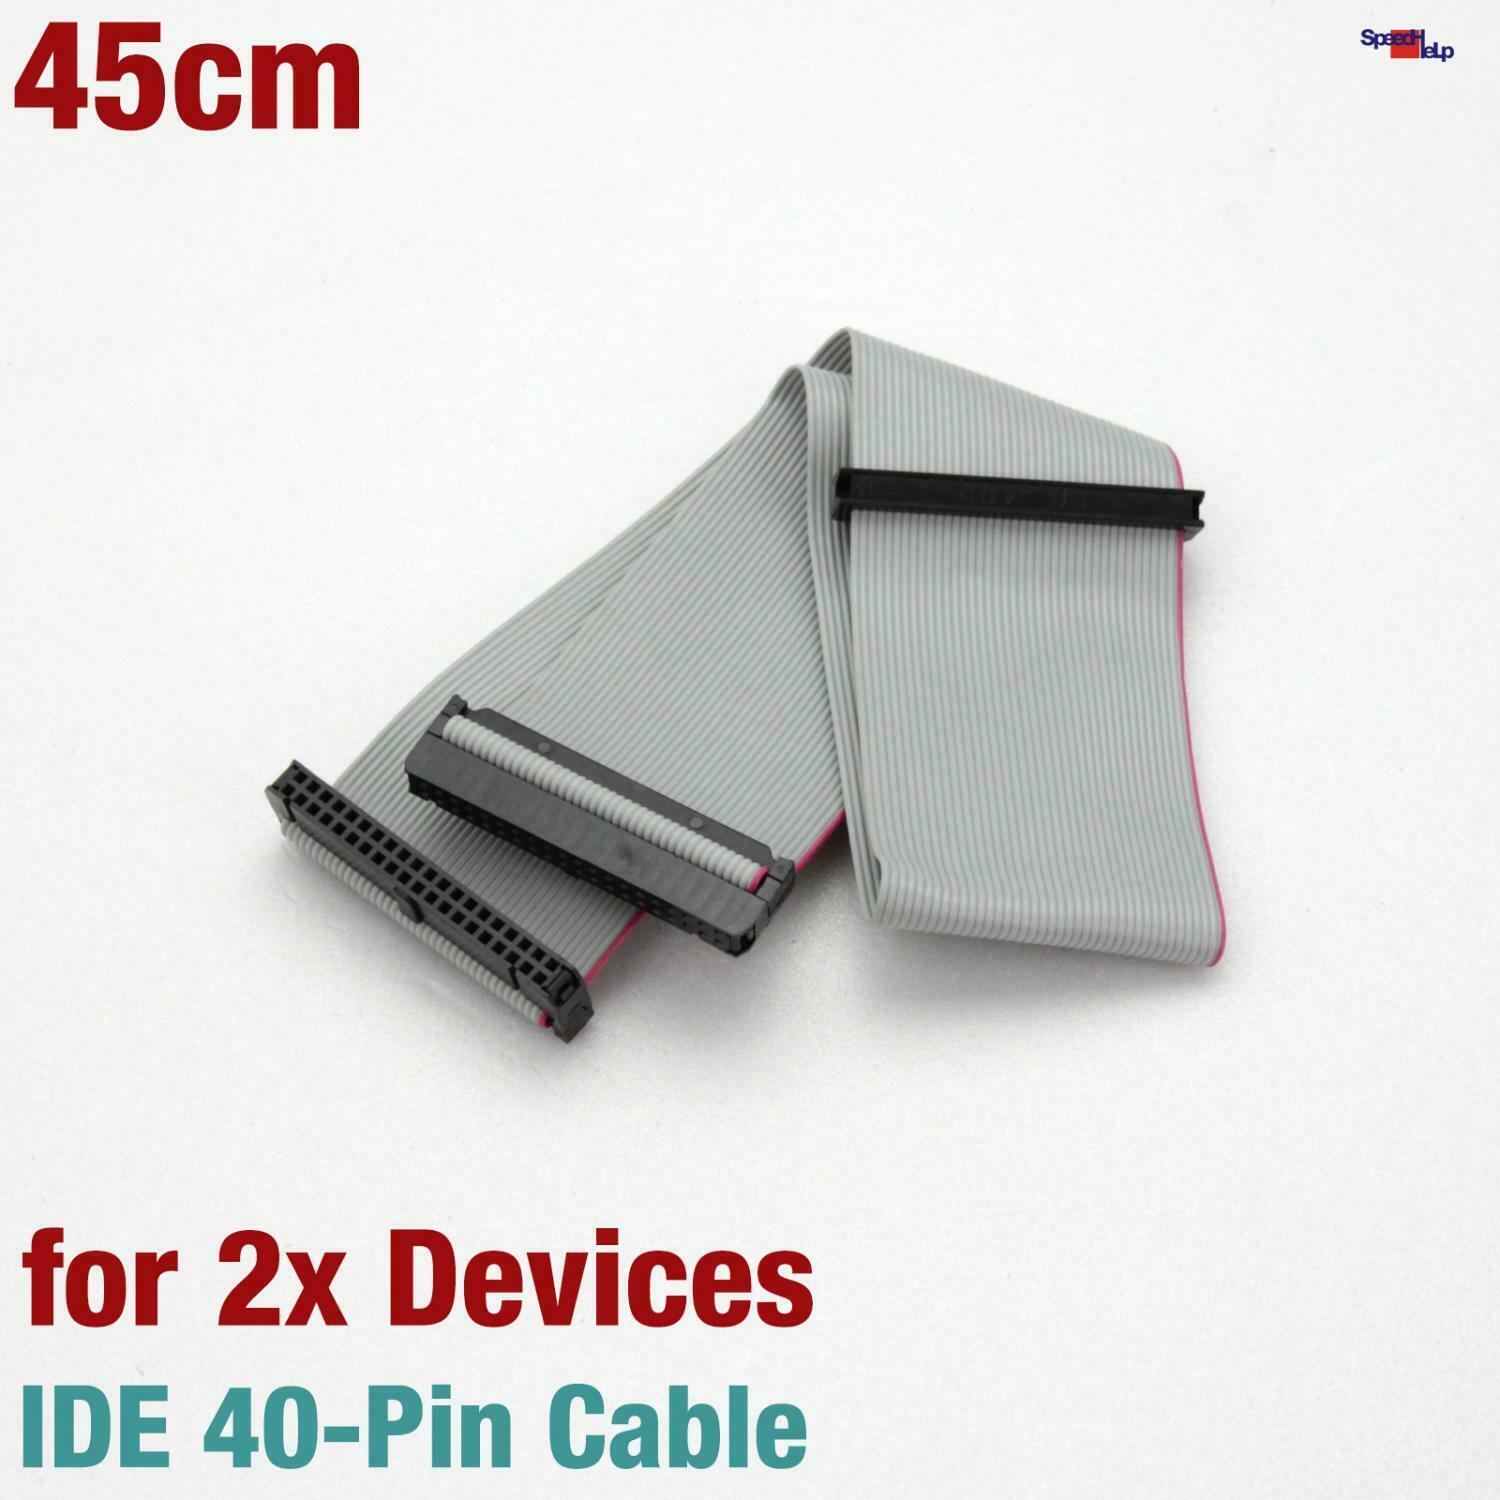 New 45CM Ide Ata Cable 3x 40-PIN Pole 2x Devices Pio Udma 33 HDD Cdrom